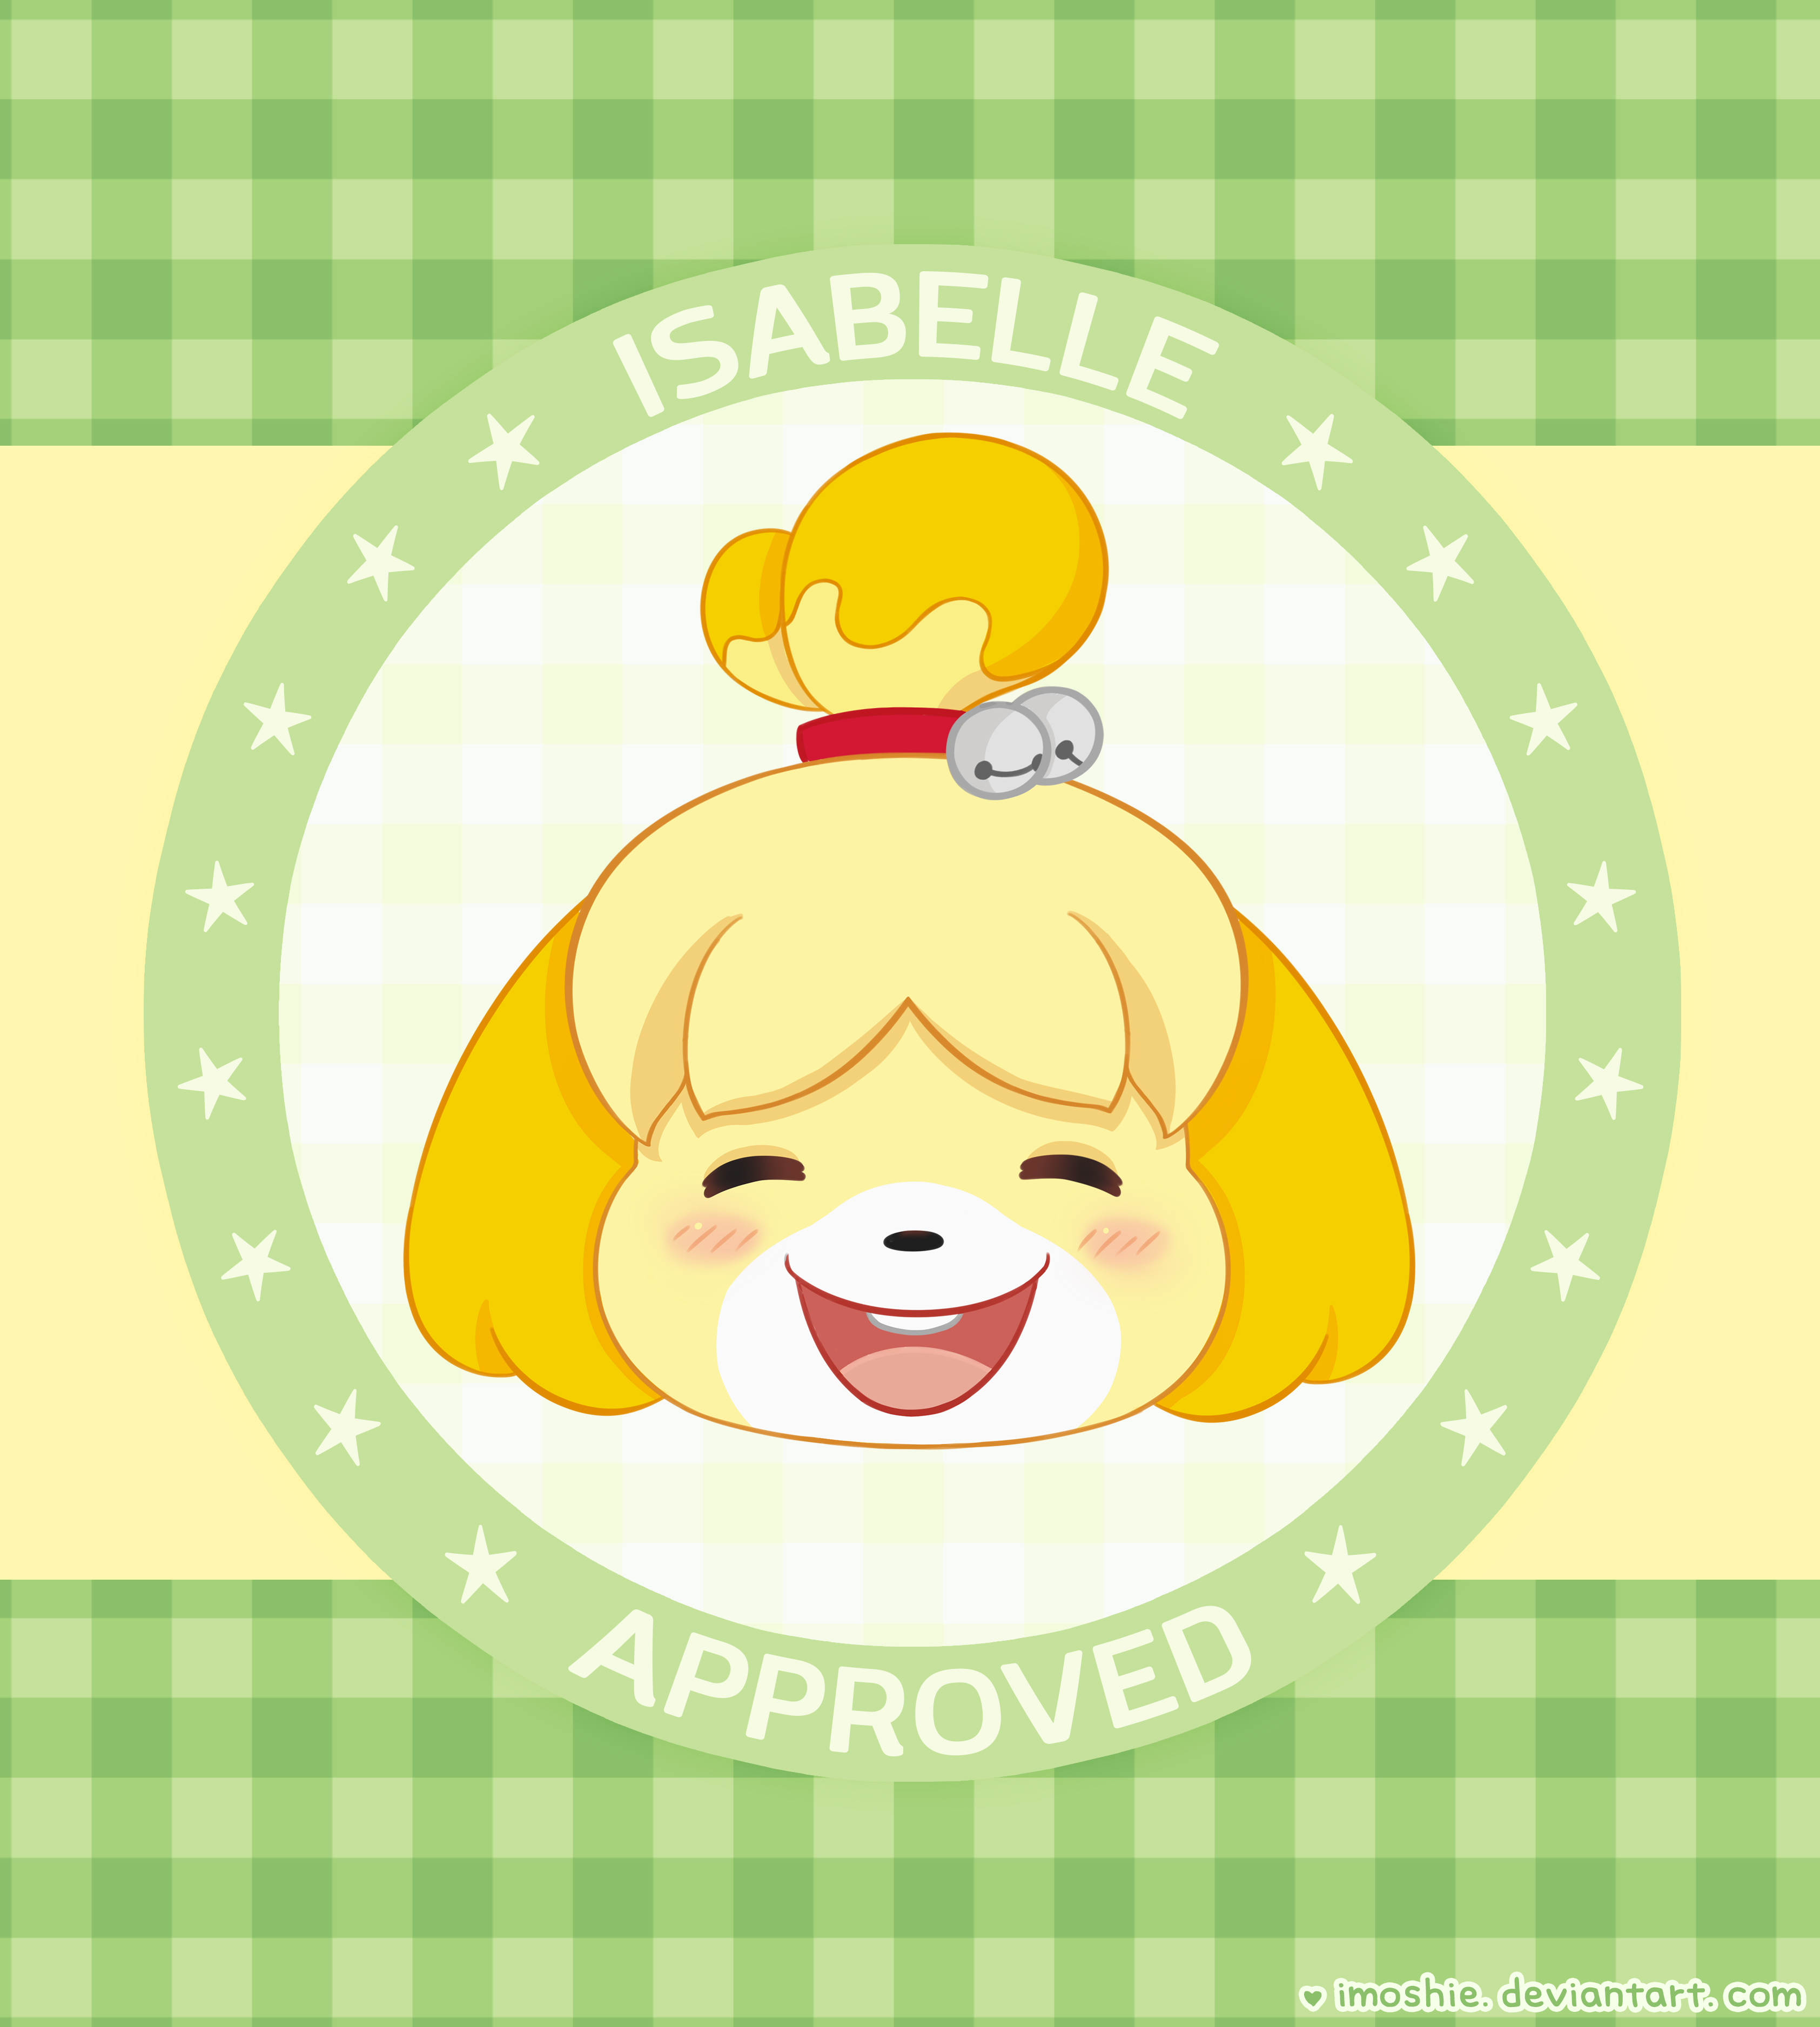 Isabelle Animal Crossing Wallpaper By Imoshie On Deviantart